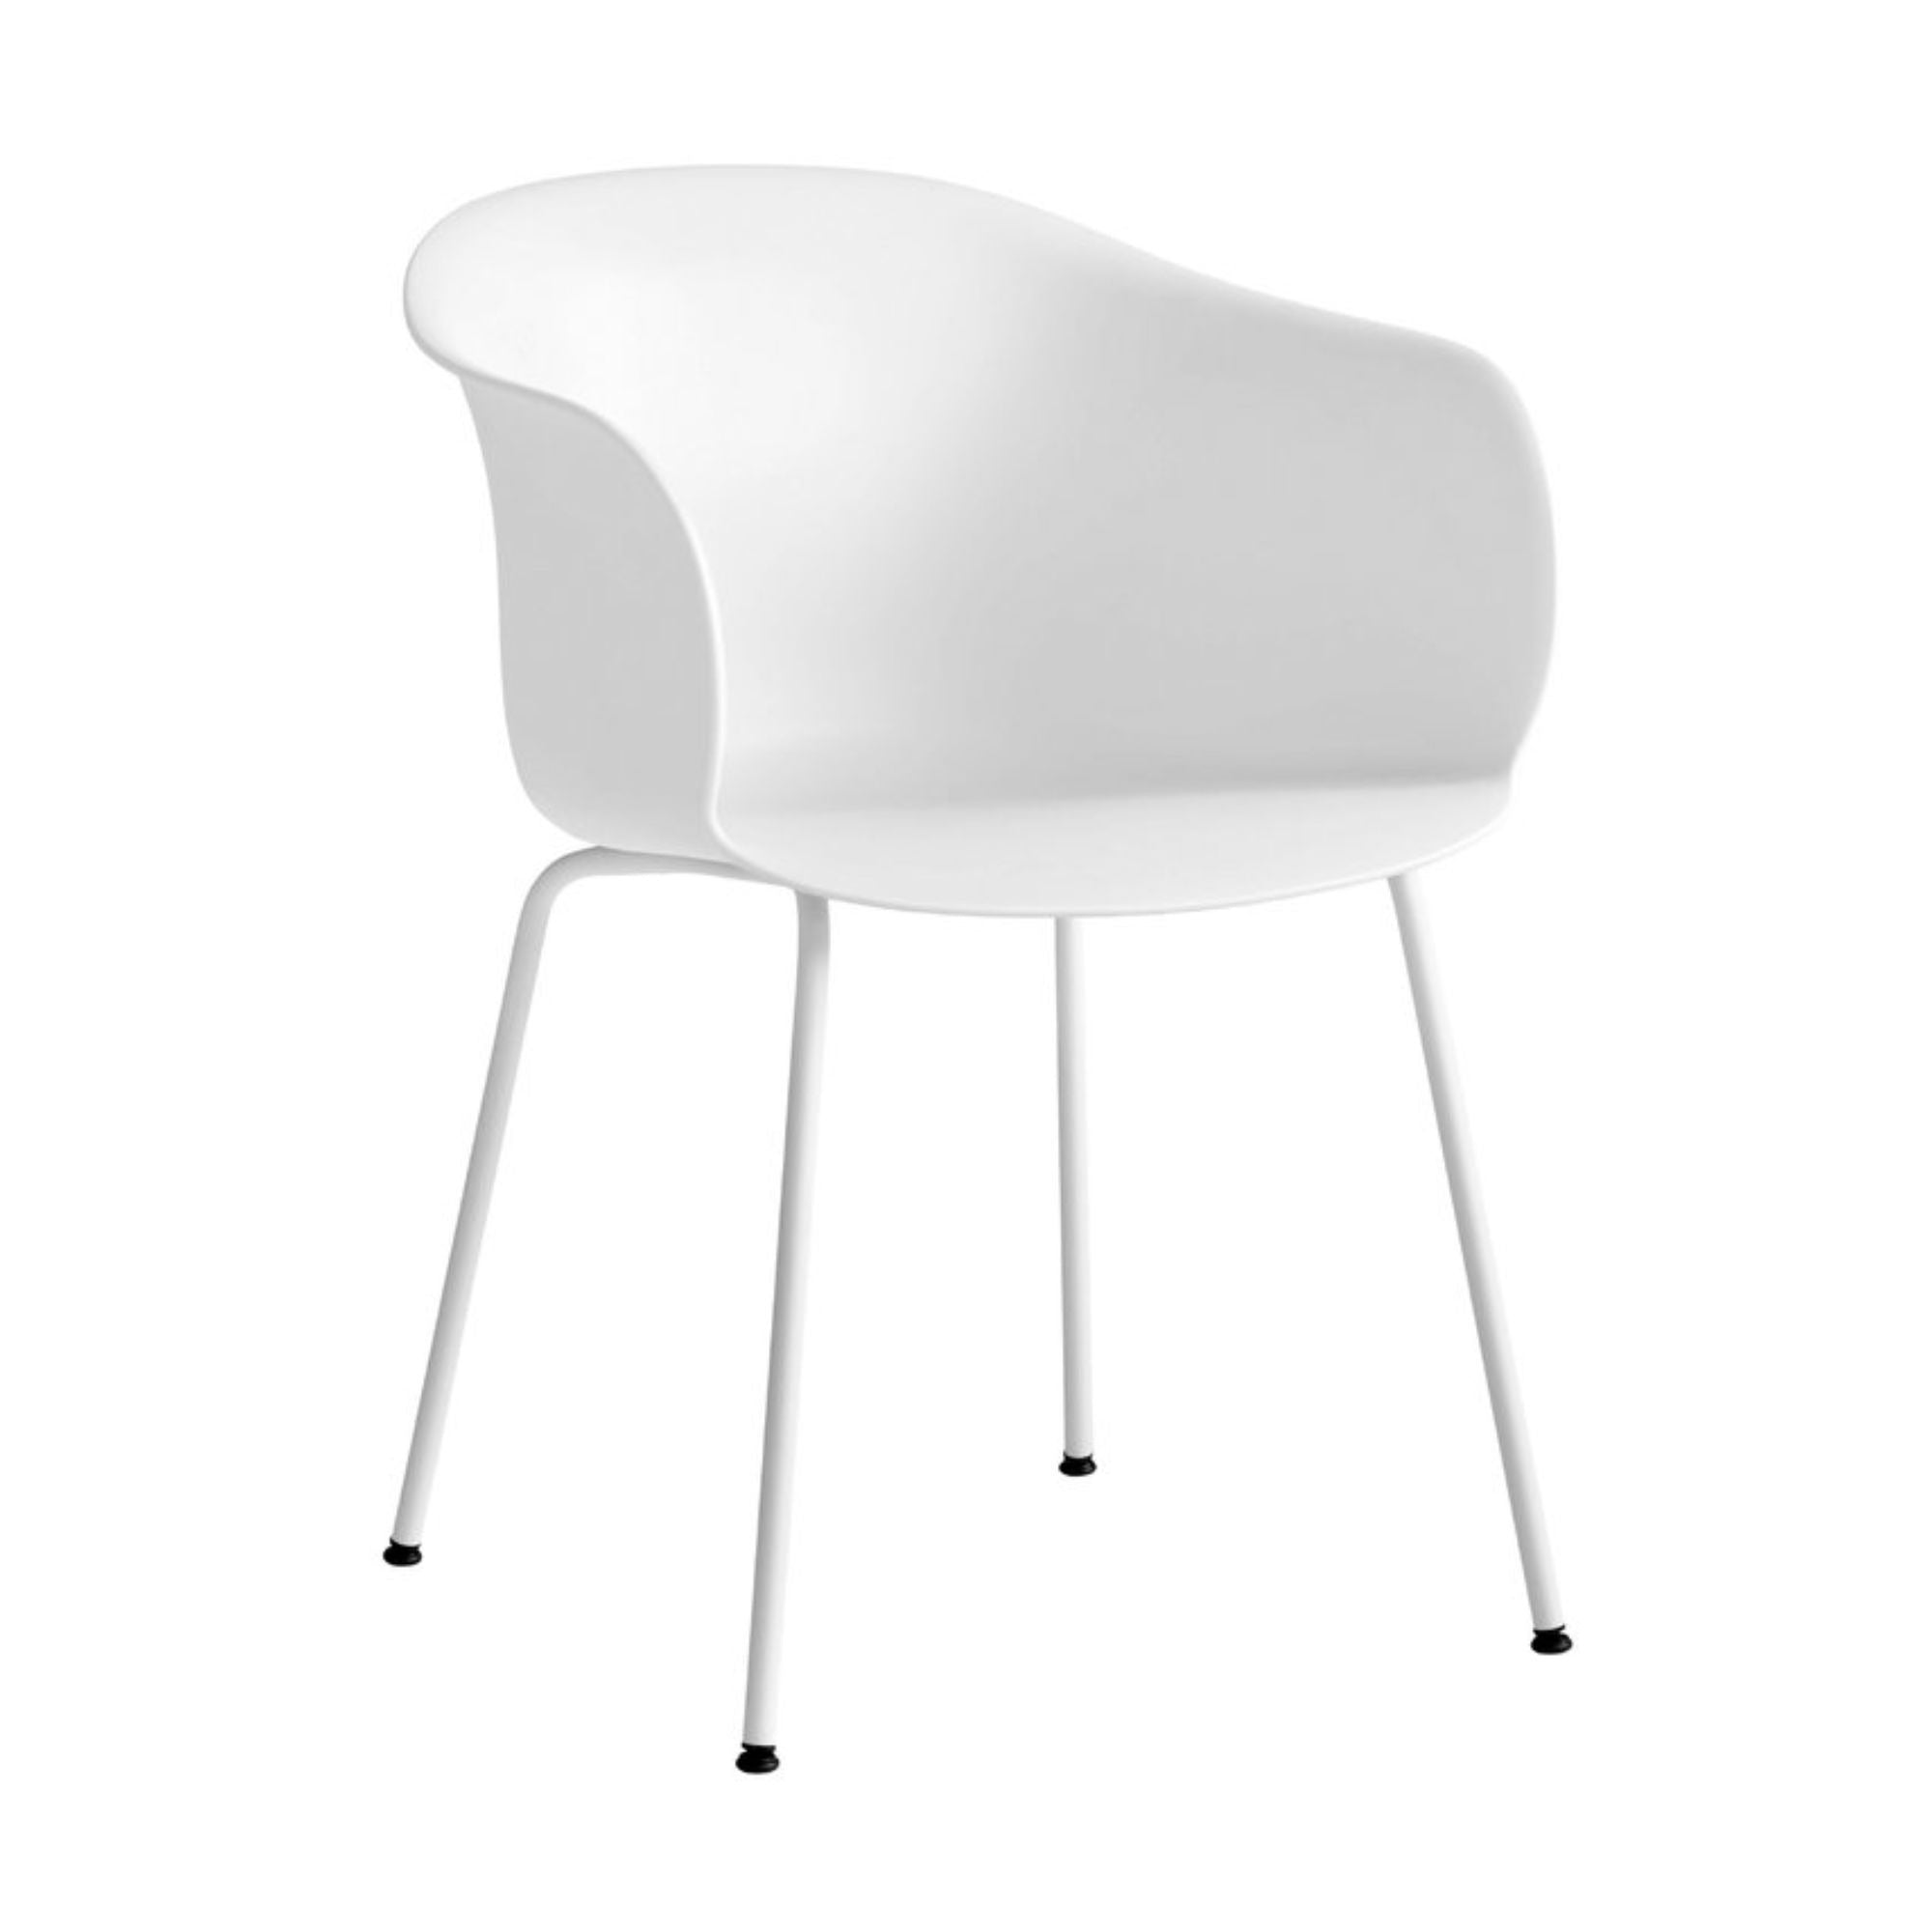 &Tradition JH28 Elefy Chair , White - White